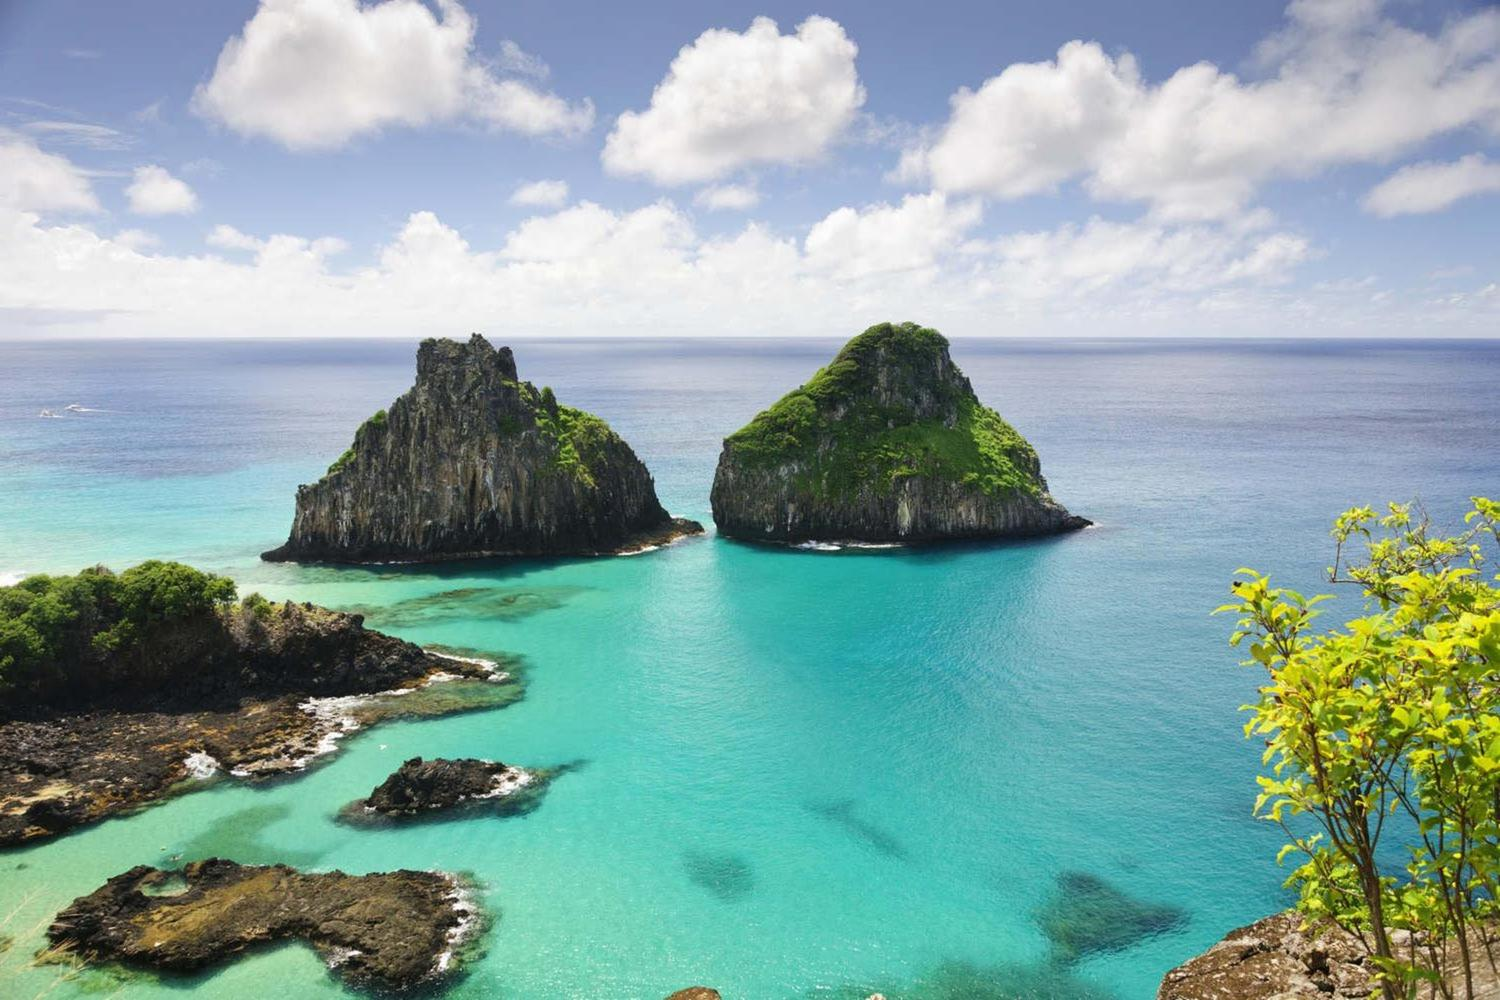 Stunning view of the Two Brothers Rock at Fernando de Noronha